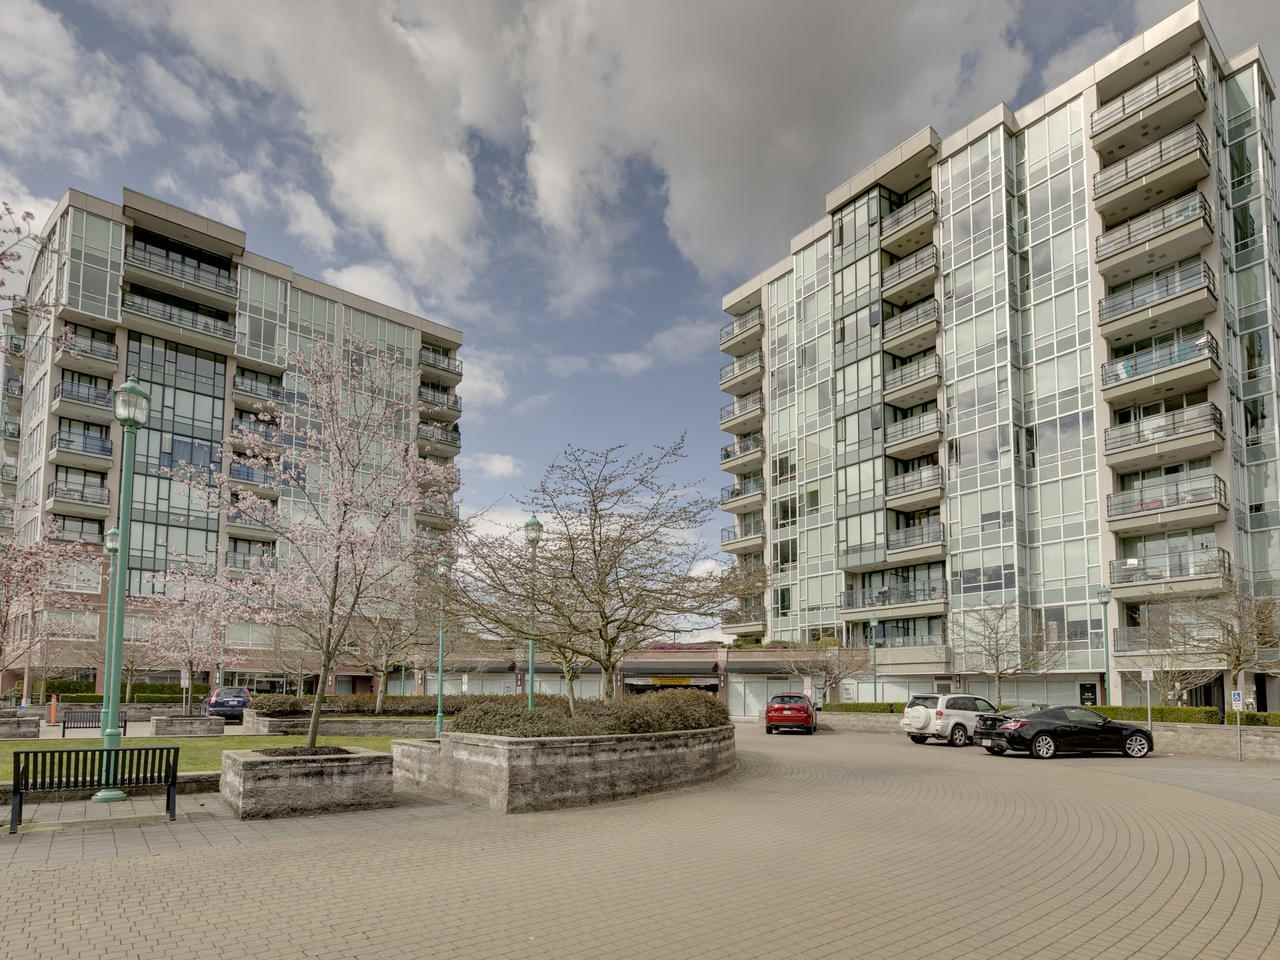 For Sale: 507 - 12069 Harris Road, Pitt Meadows, BC | 3 Bed, 2 Bath Condo for $624900.